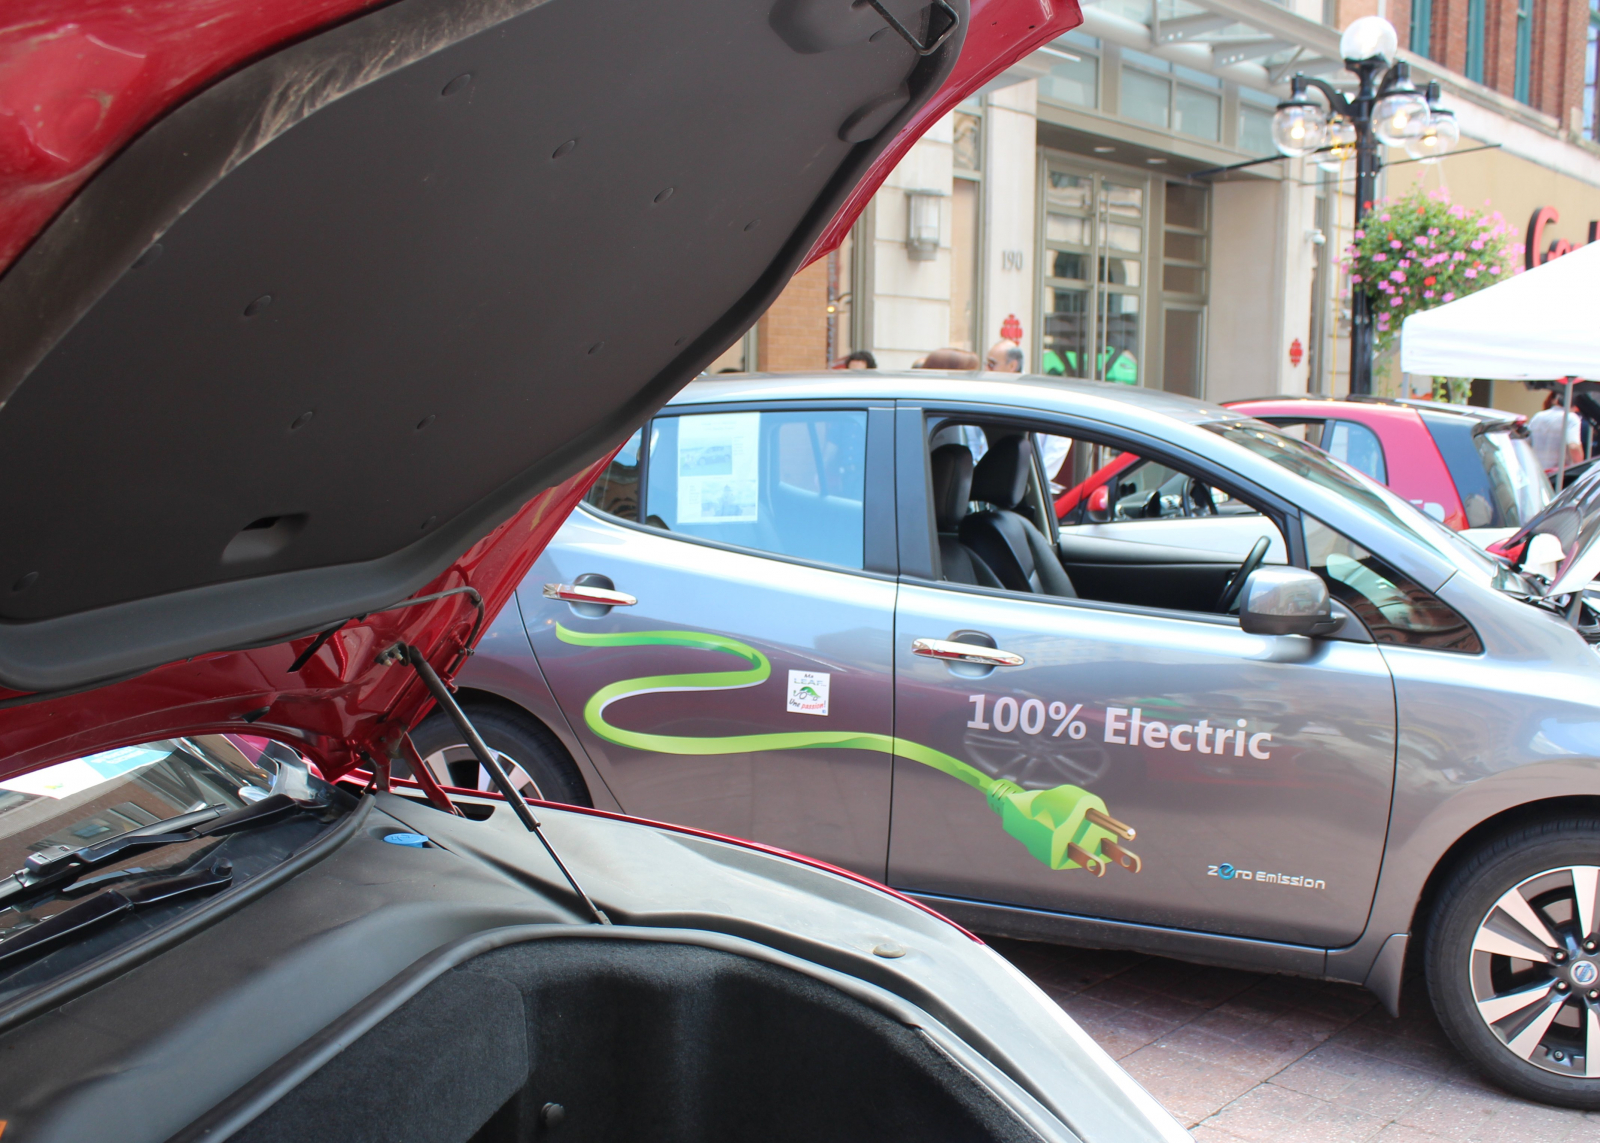 A Nissan Leaf An Electric Car That Produces Zero Tailpipe Emissions Can Be Seen On Sparks Street In Downtown Ottawa File Photo By Mike De Souza